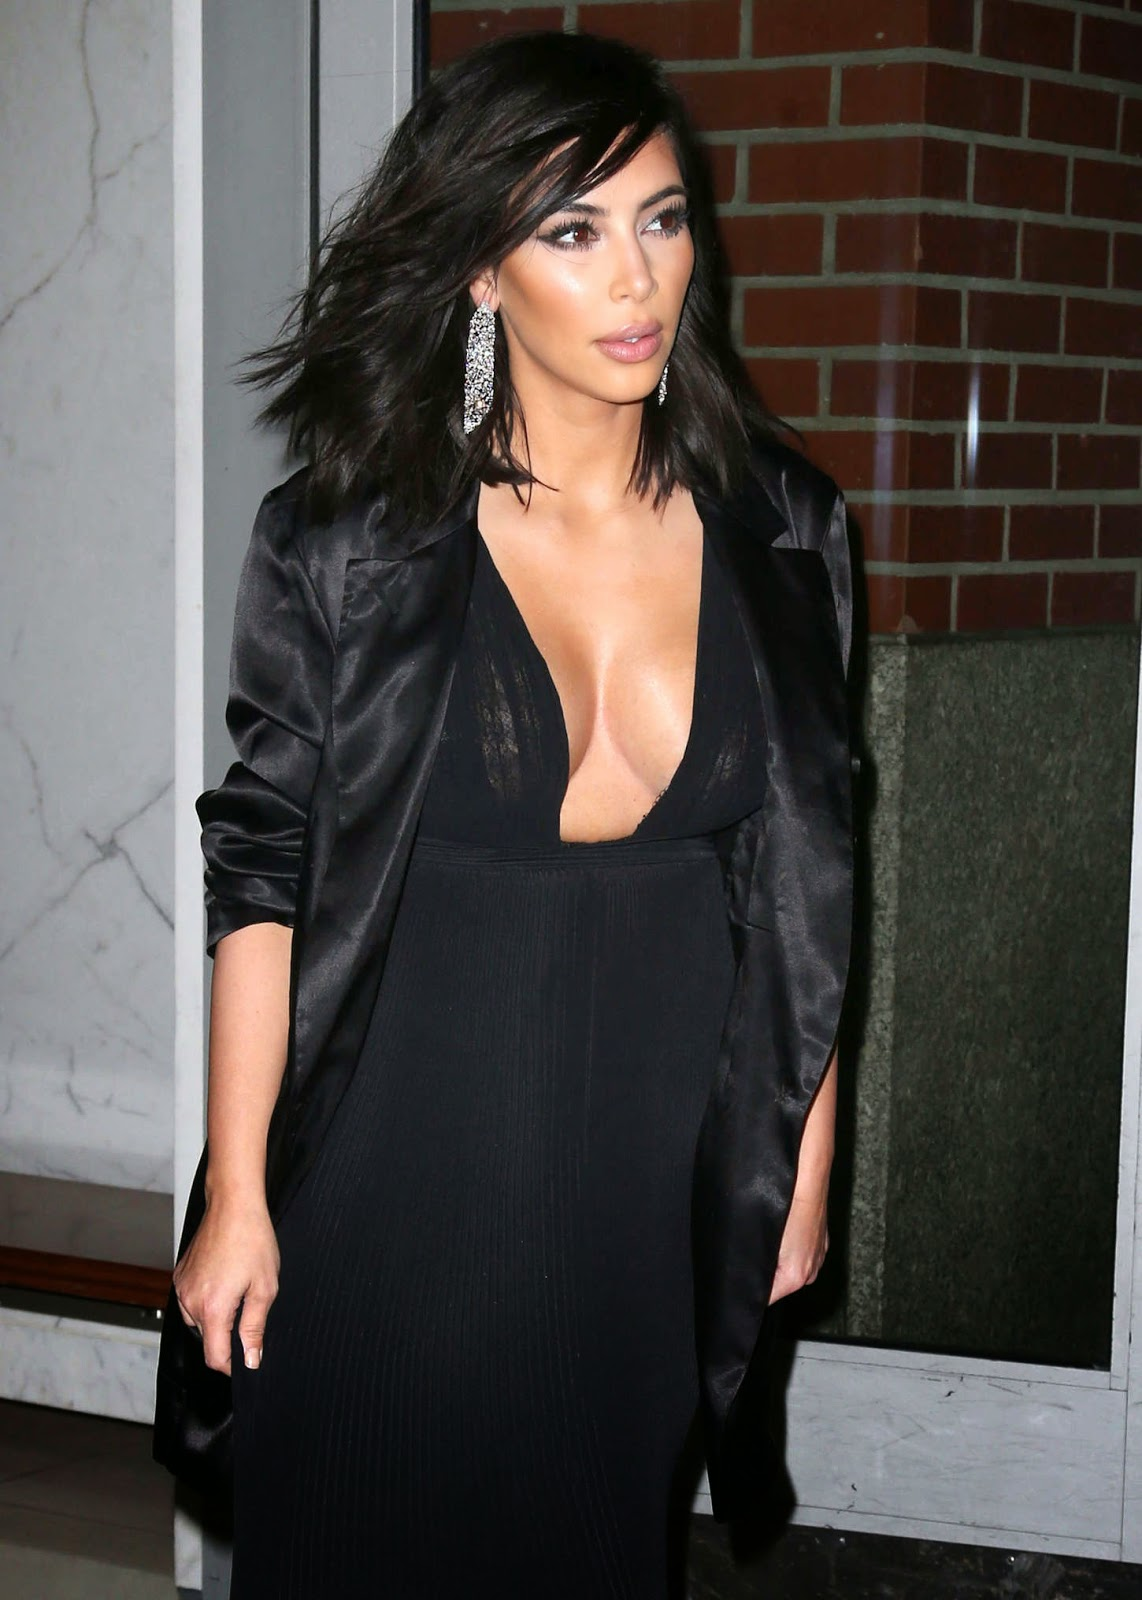 Kim Kardashian in a pleated plunging black maxi dress out and about in NYC